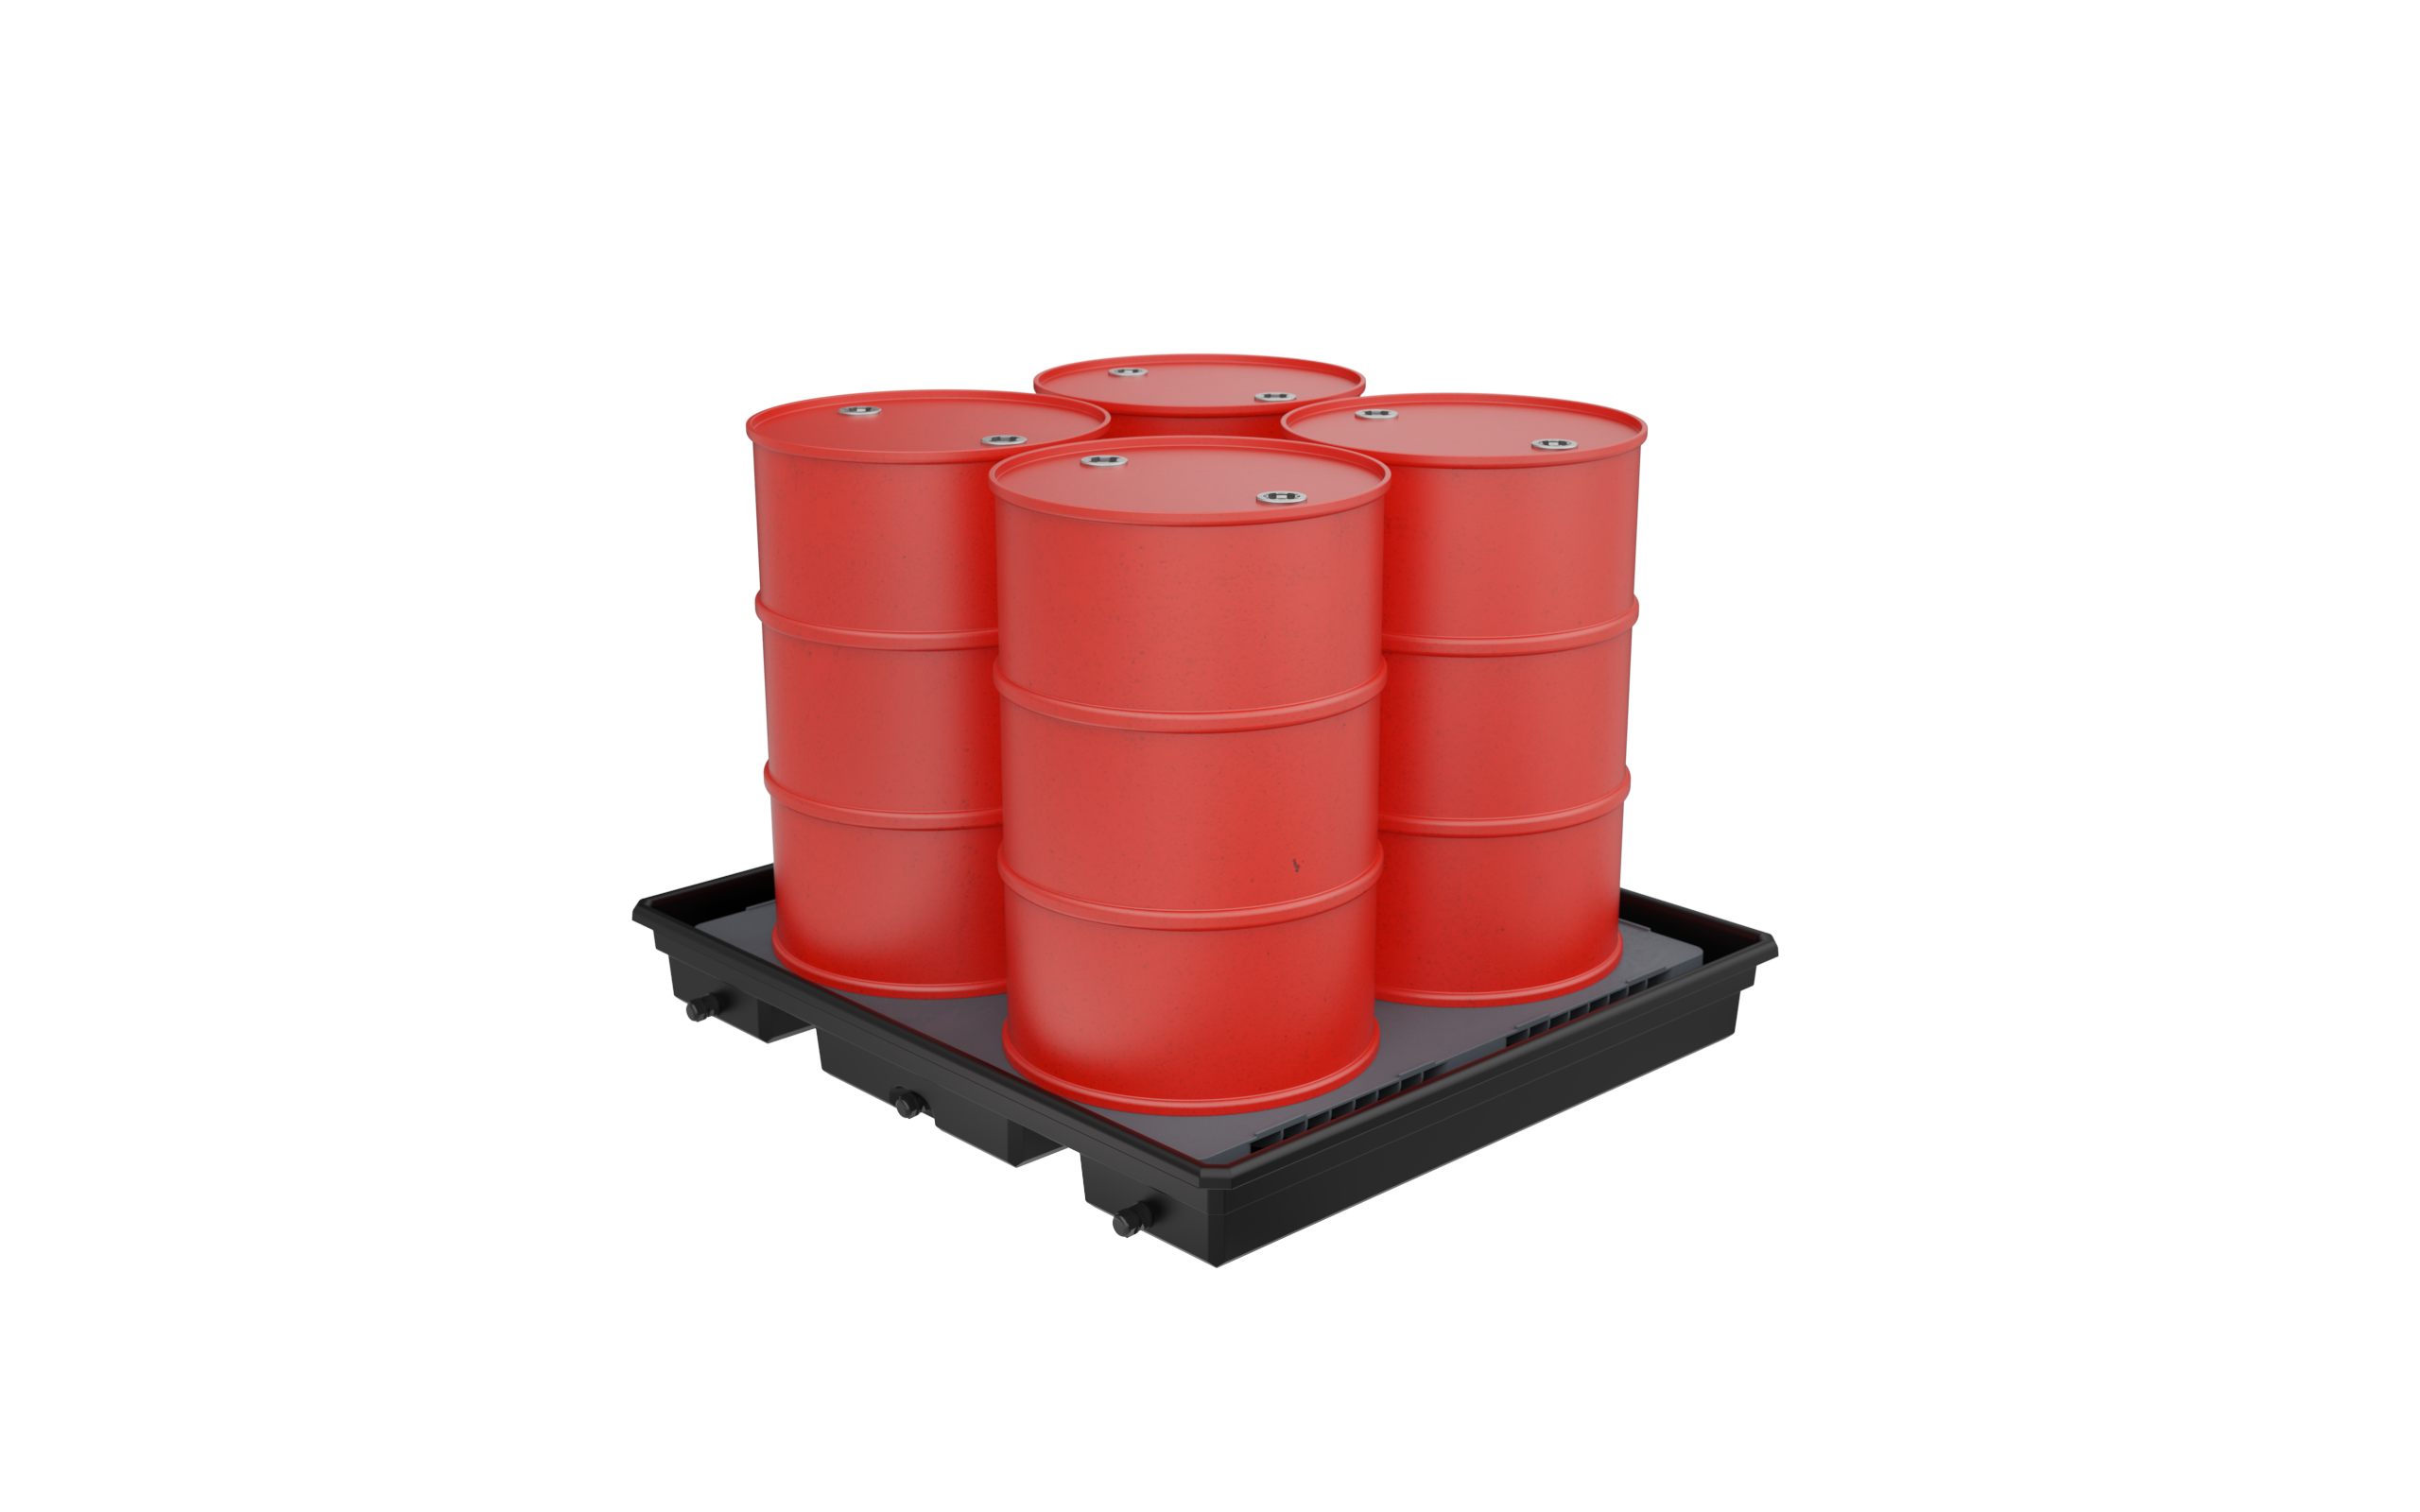 Spill Containment - 4  vertical perf no barrel מאצרה ל-4 חביות עומדות